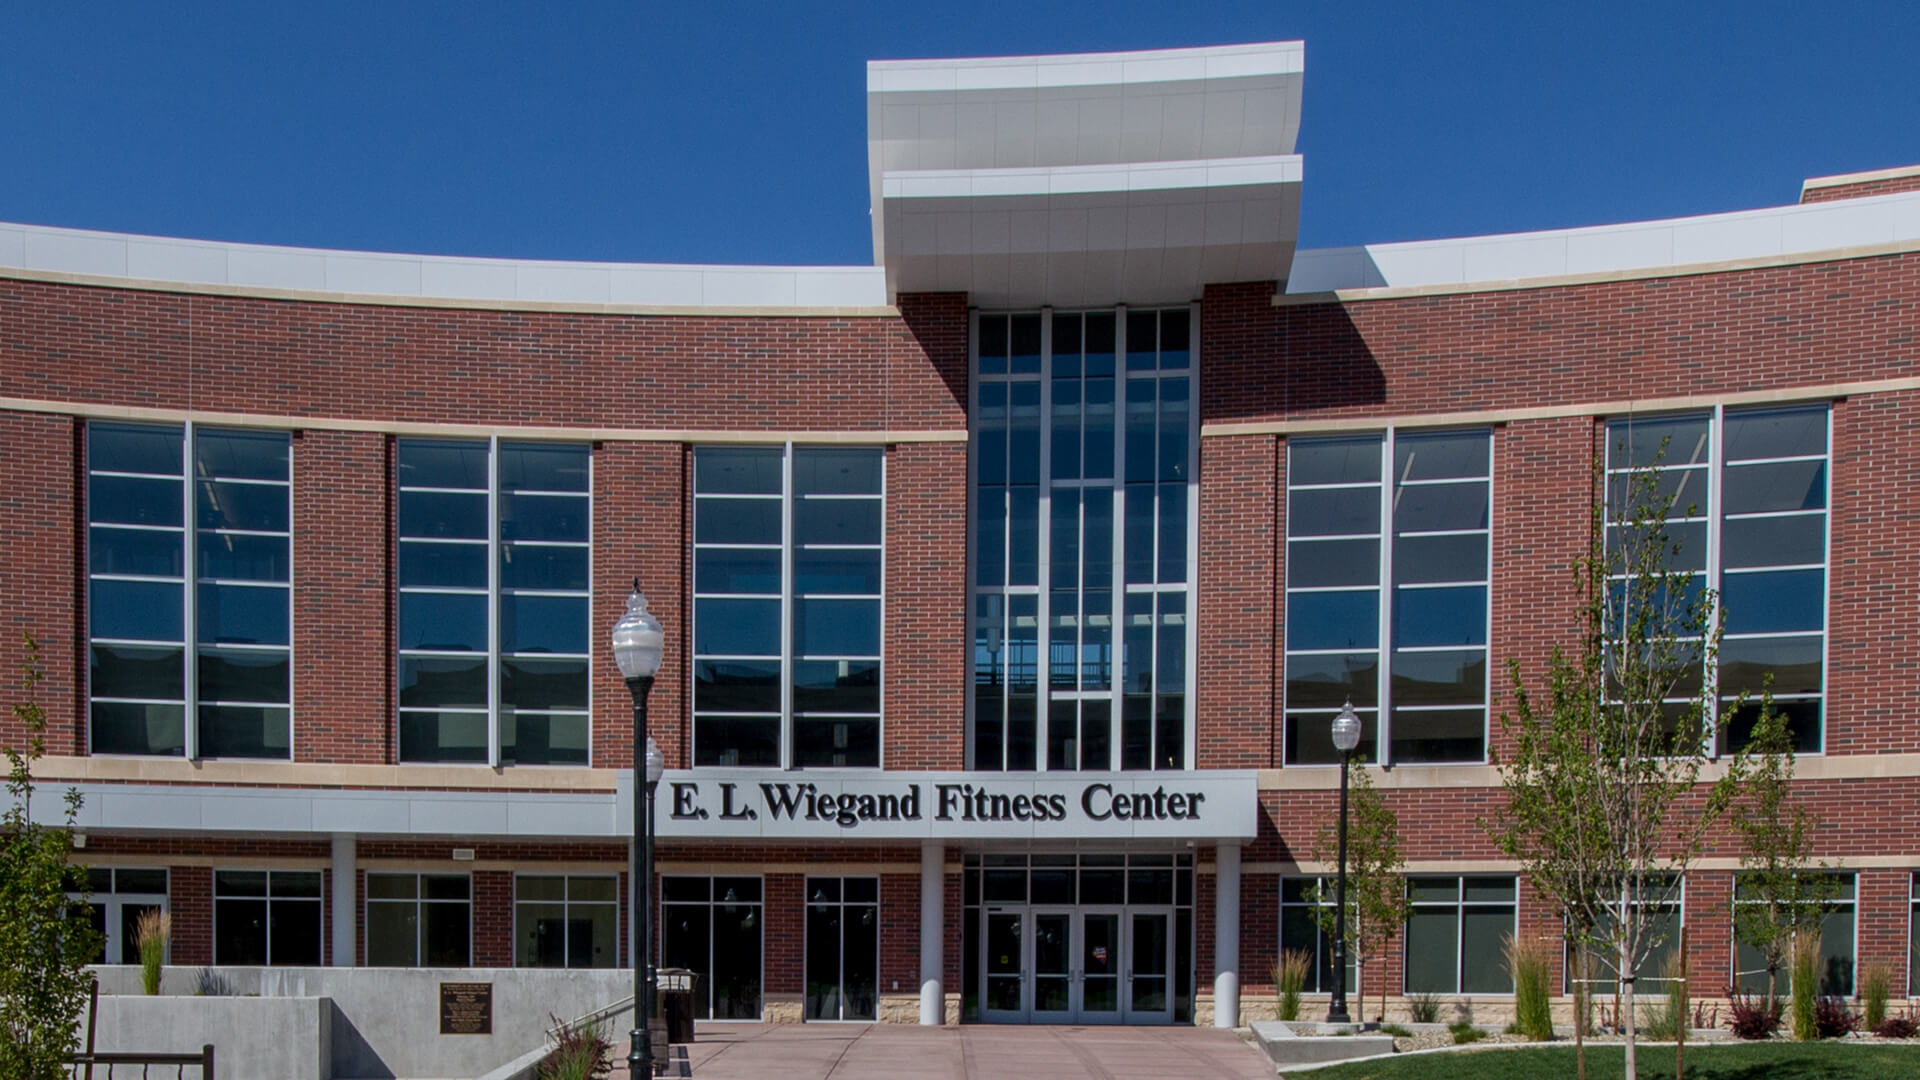 Capital Glass provides Reno, Carson City and the Northern Nevada area with the best in residential and commercial glass services. Our services include glass repair, window repair, automatic door installation, and frameless shower enclosures. Wiegand Slider 1